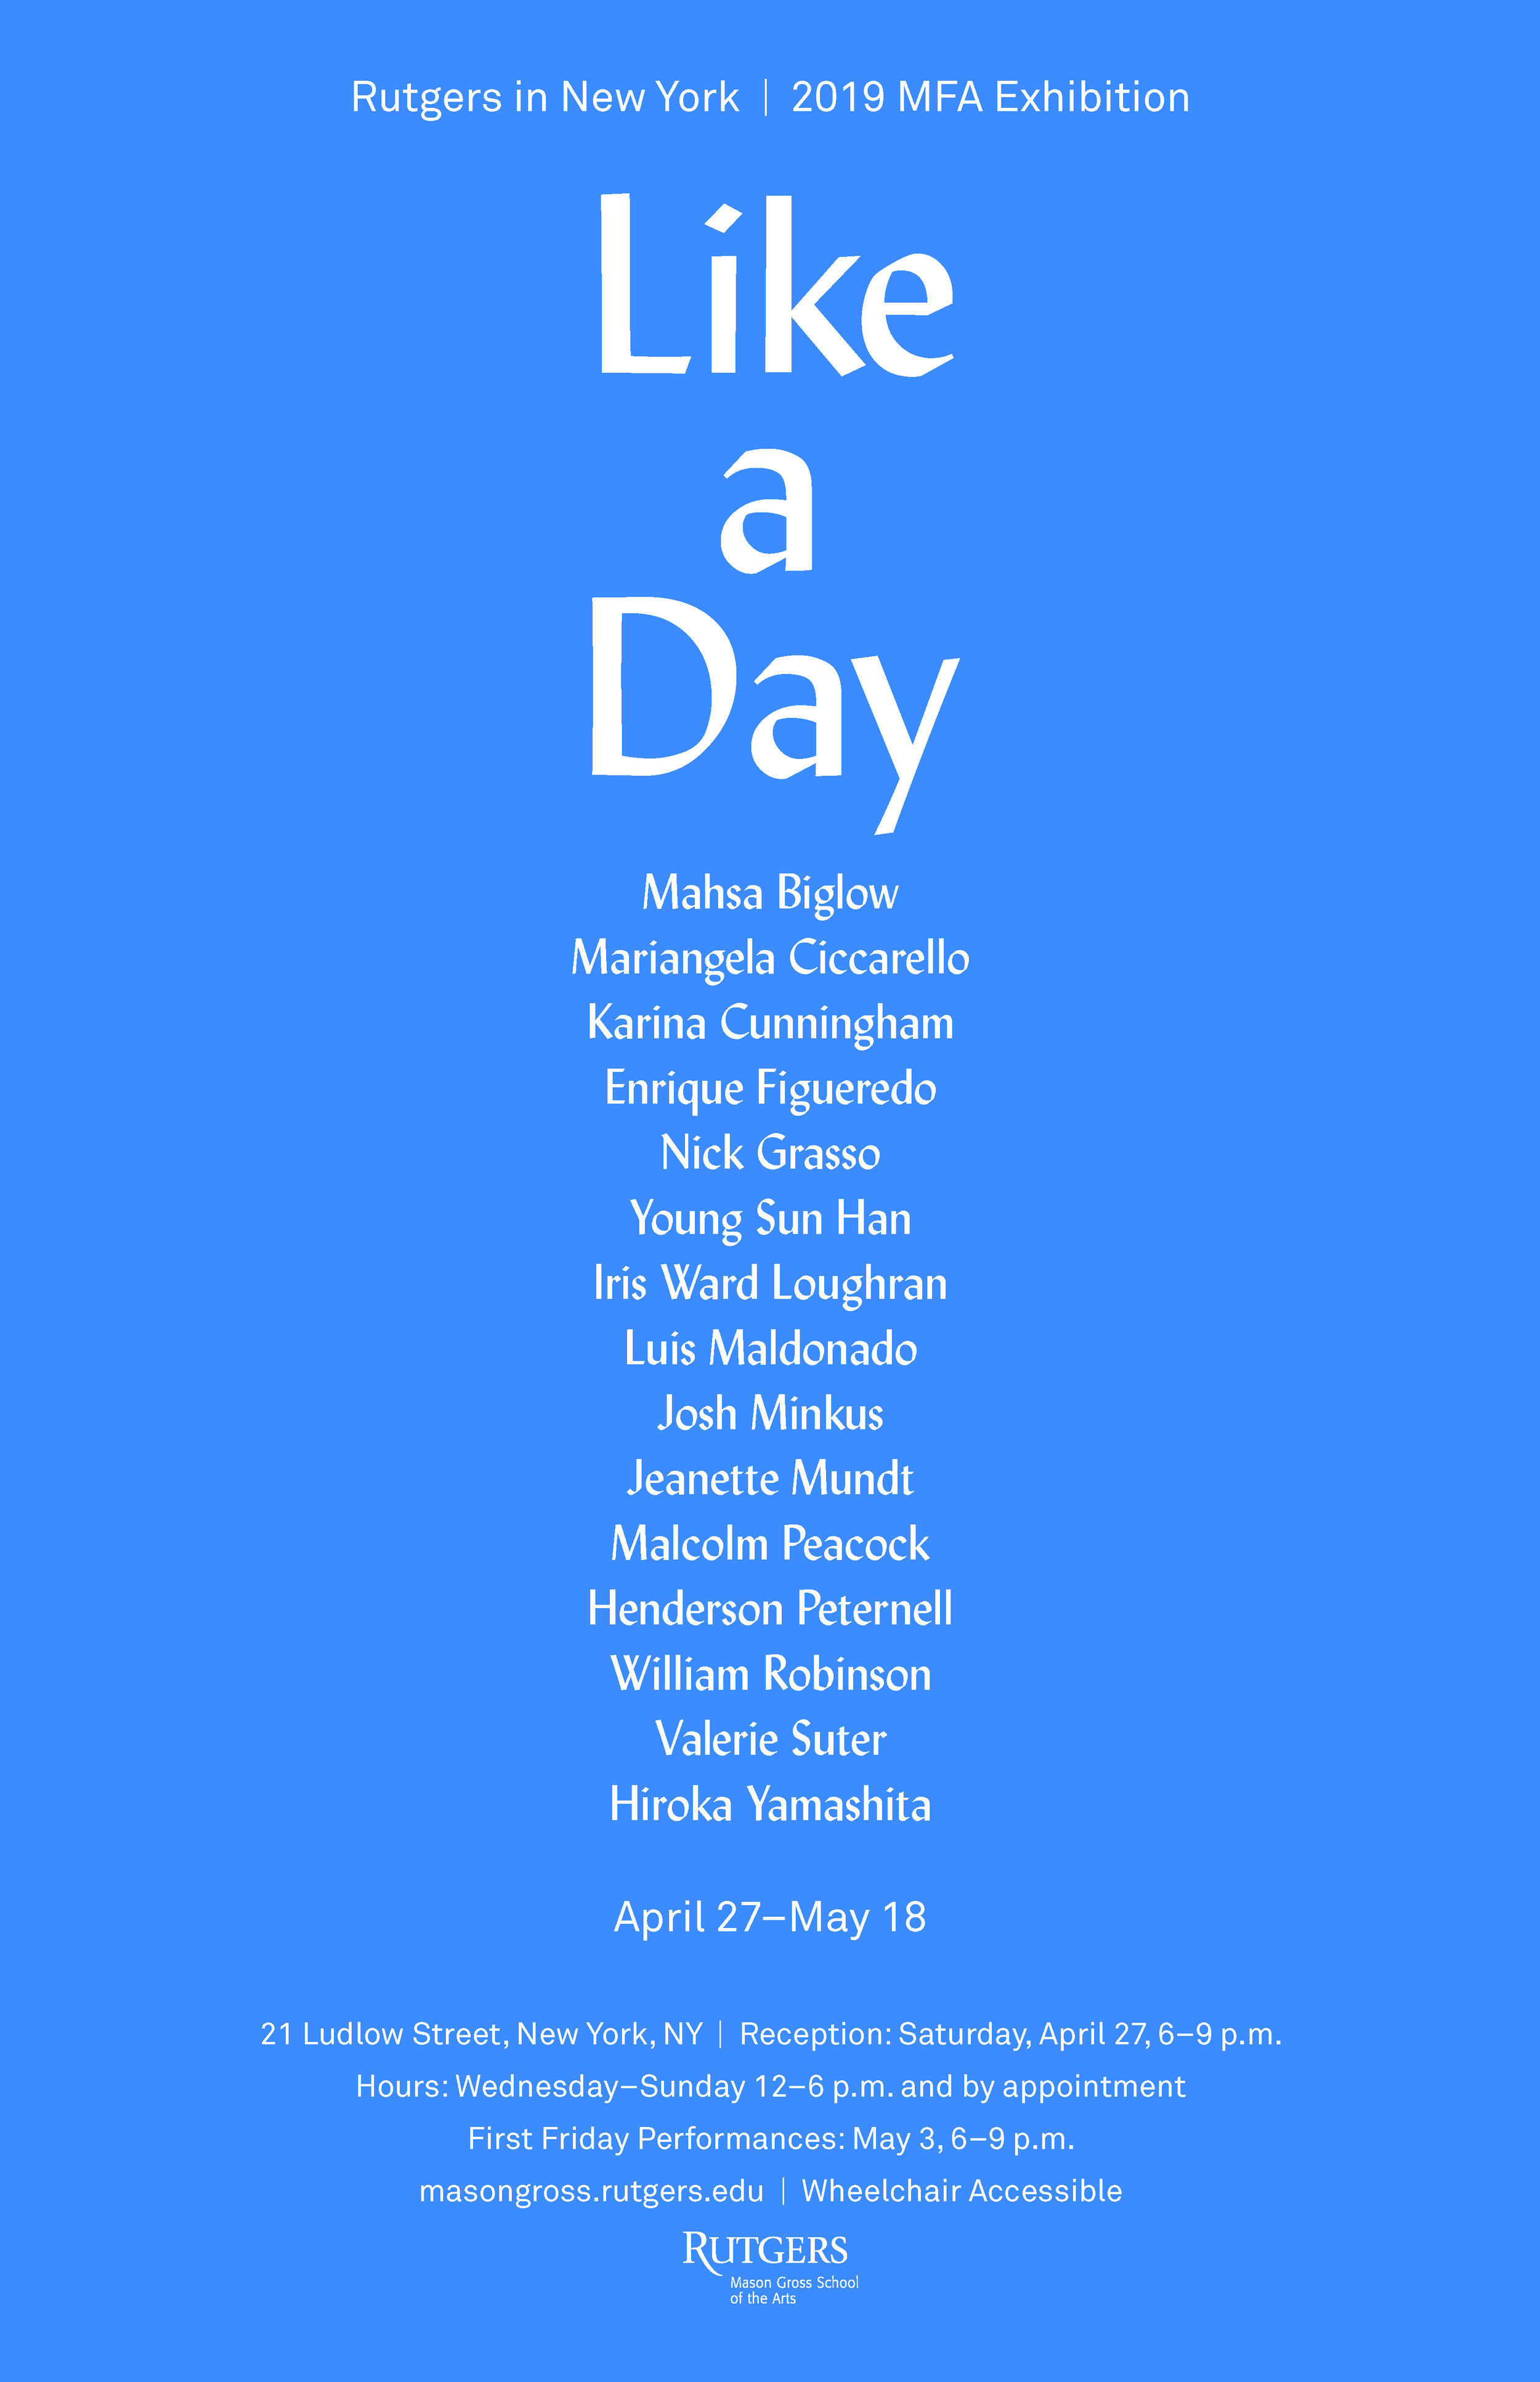 Like a Day_11 x 17 inch Poster With Names_11-04-2019.jpg